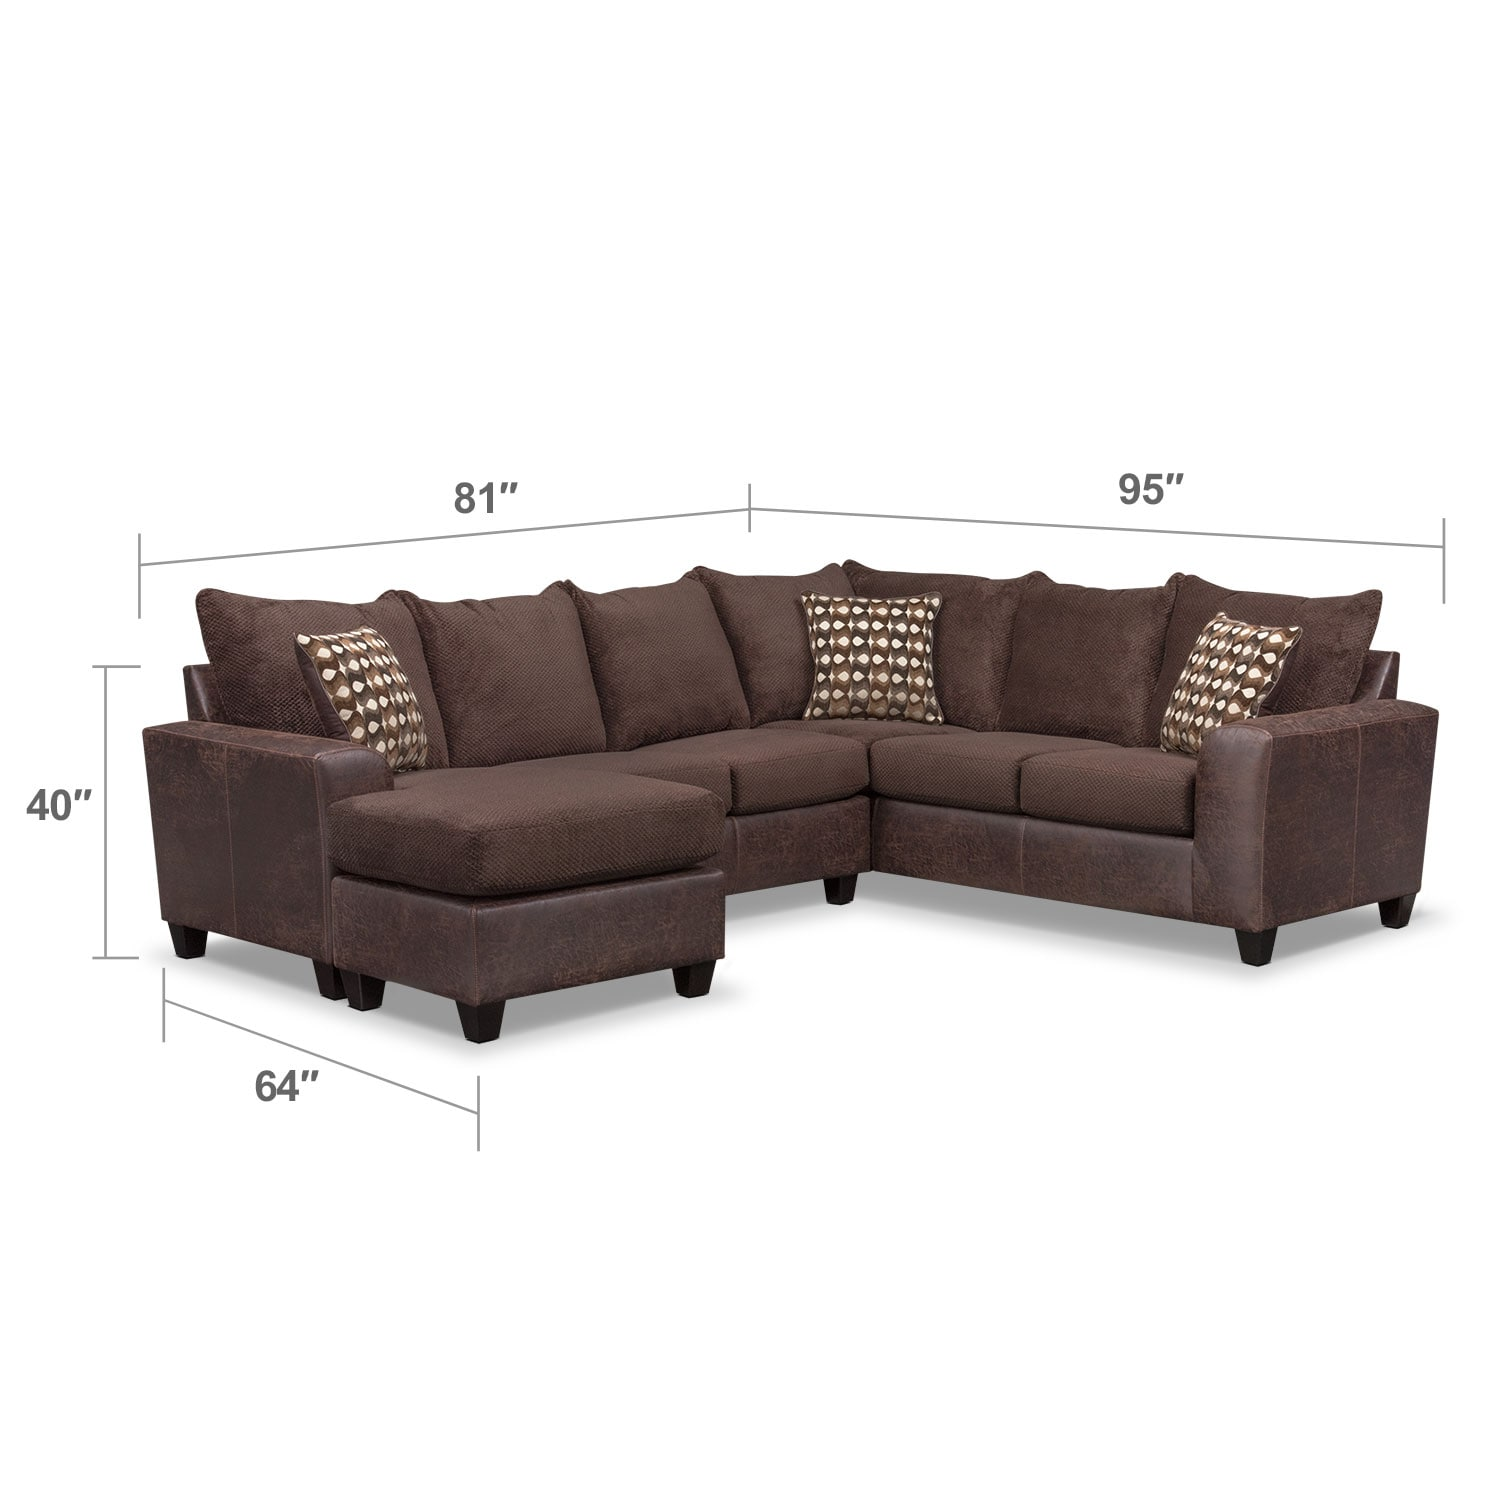 Brando 3 piece sectional with modular chaise chocolate for 3 piece sectional with chaise